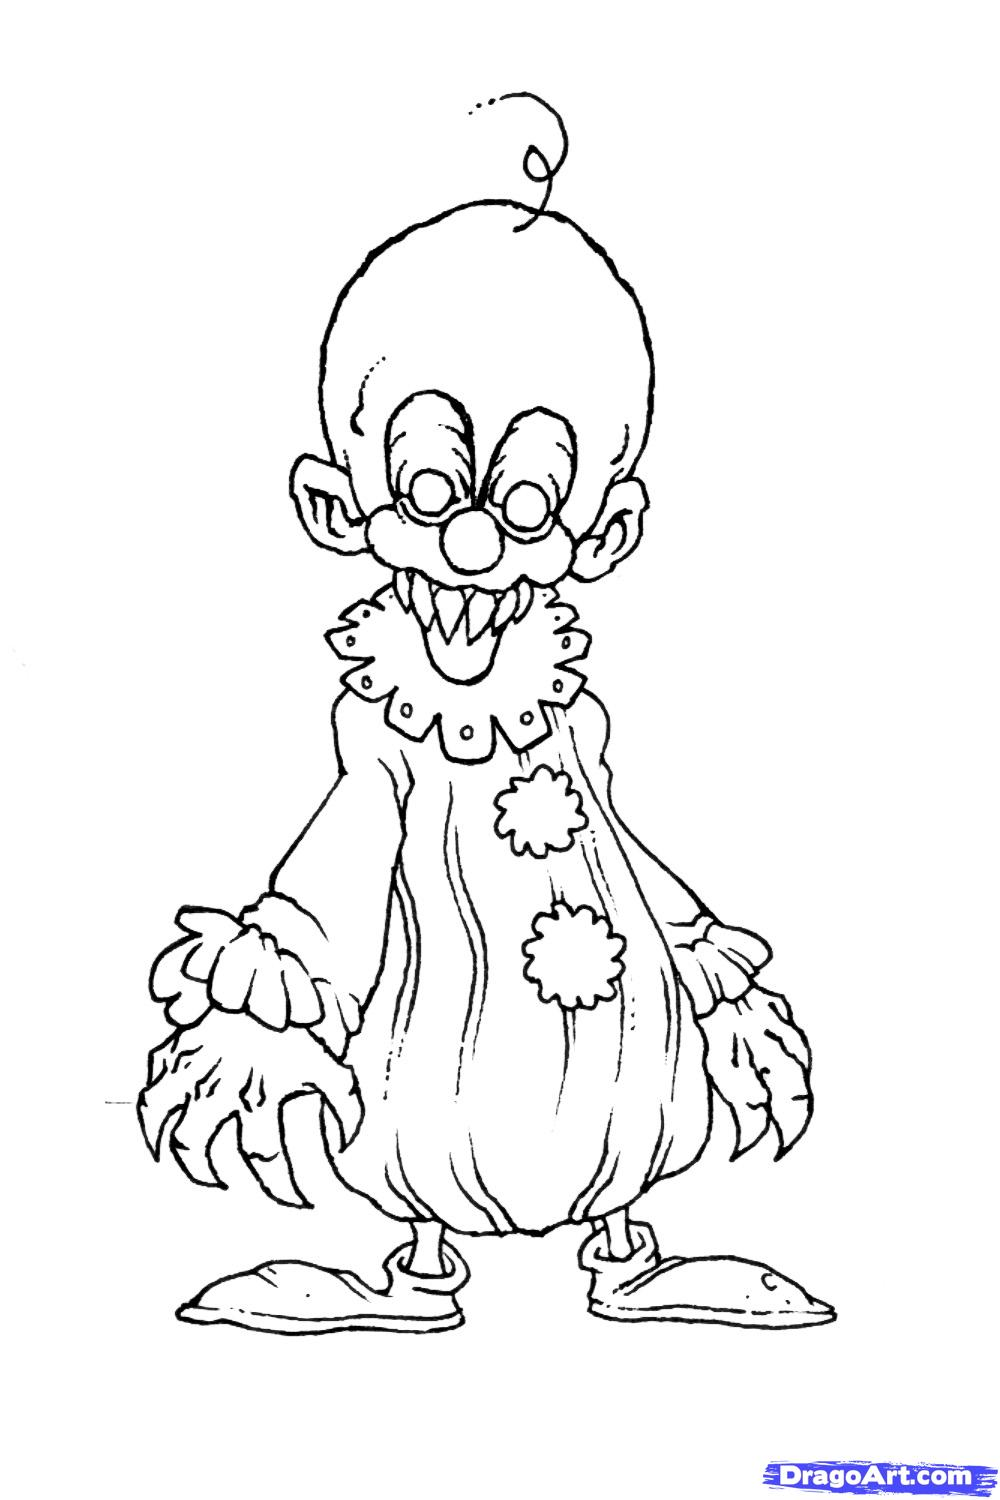 1000x1500 Scary Clown Pictures To Color Coloring Pages Kids And